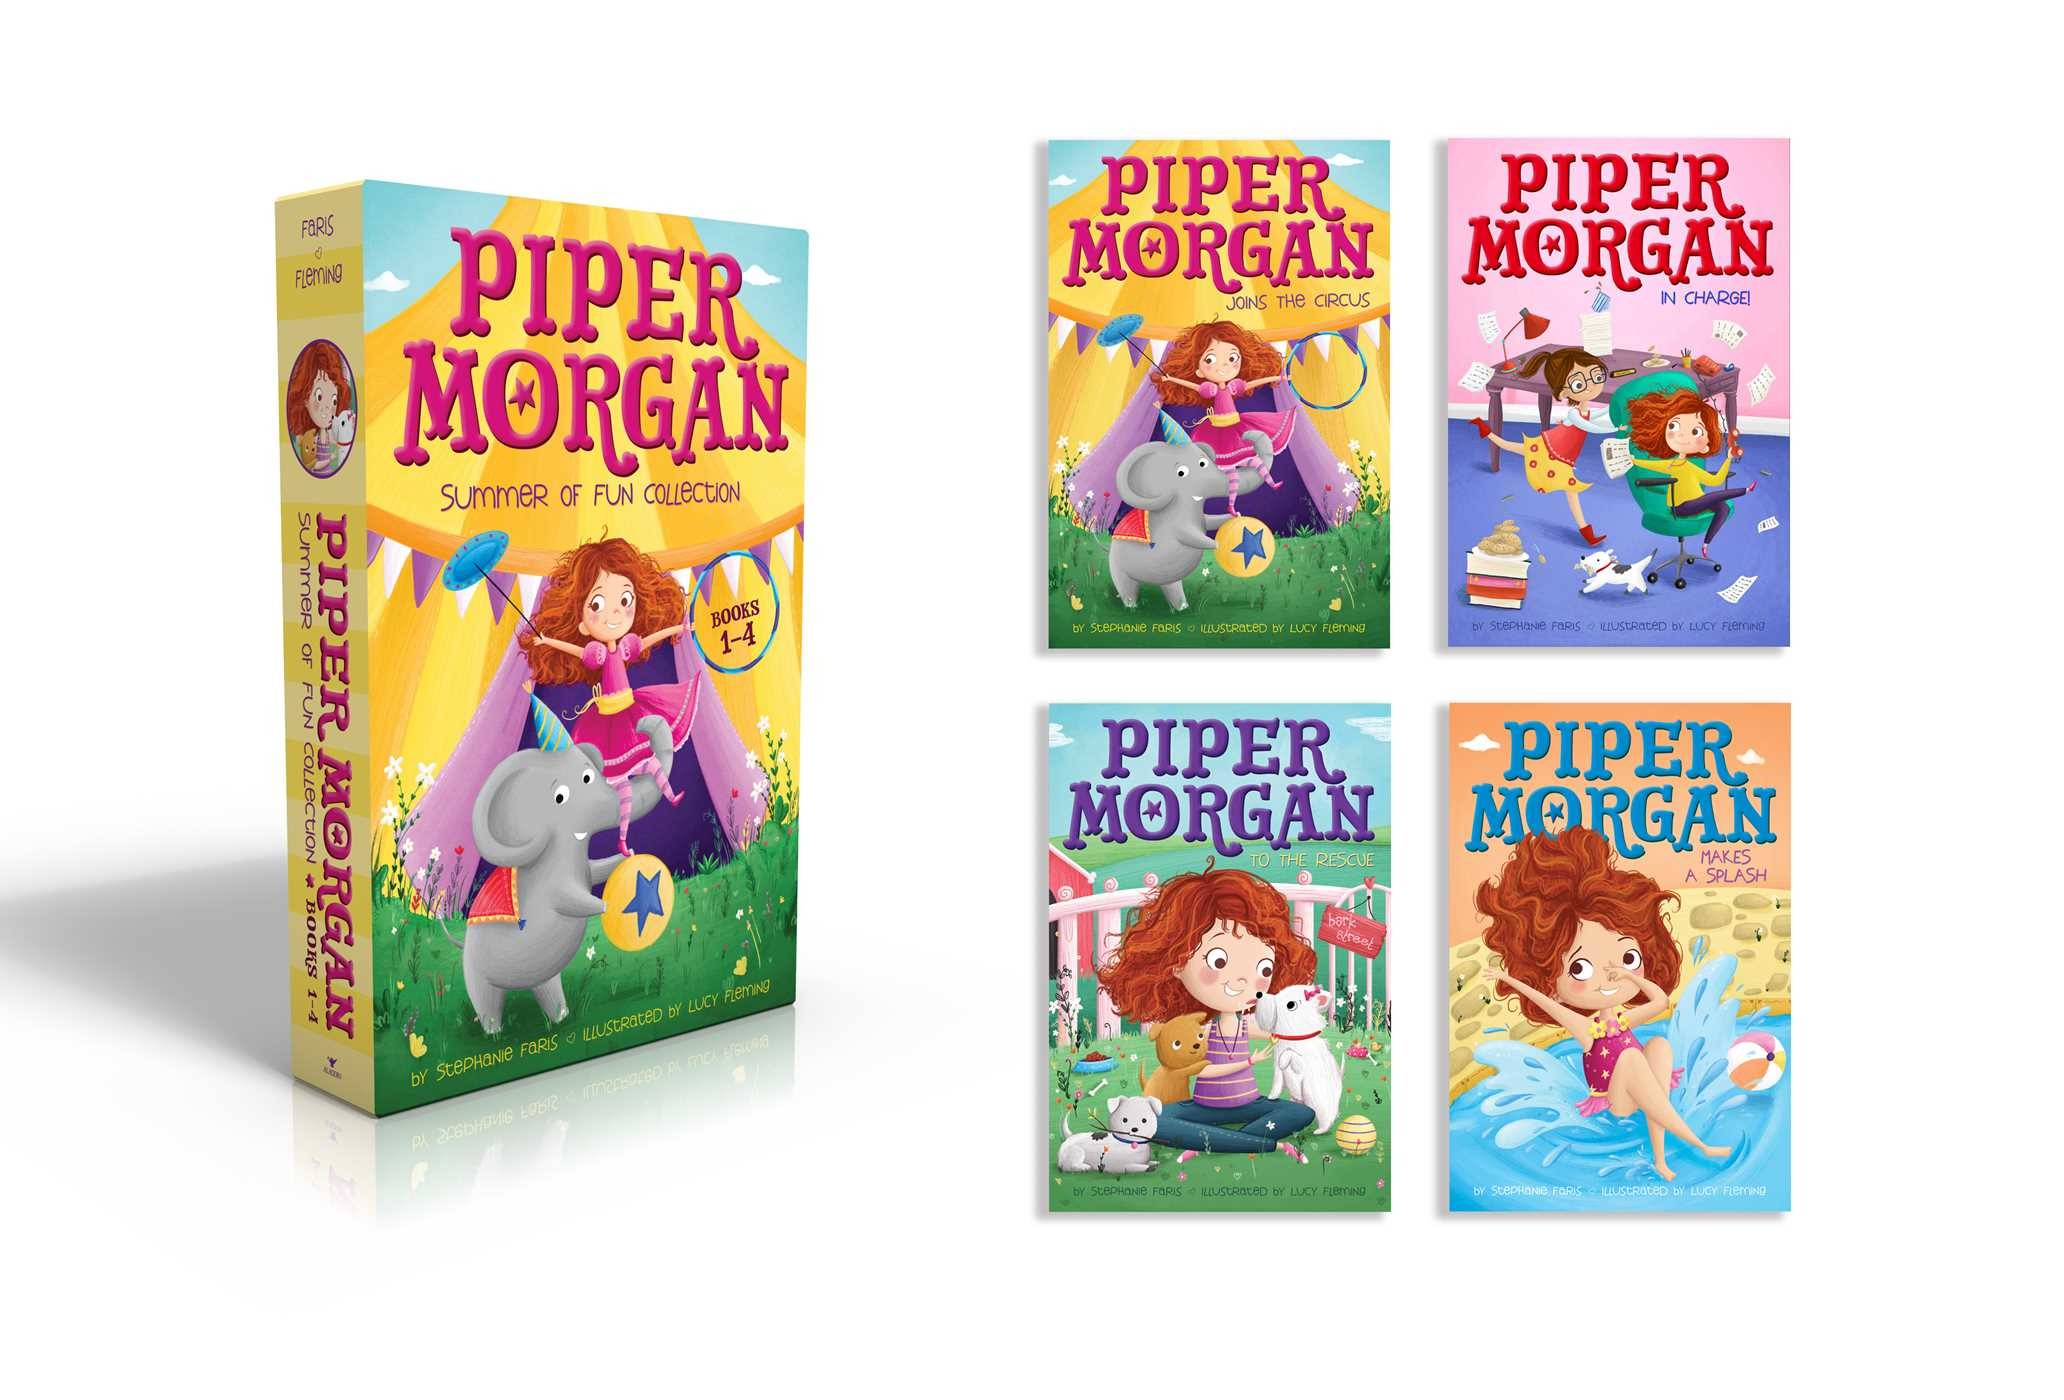 Piper morgan summer of fun collection books 1 4 9781481499781.in01